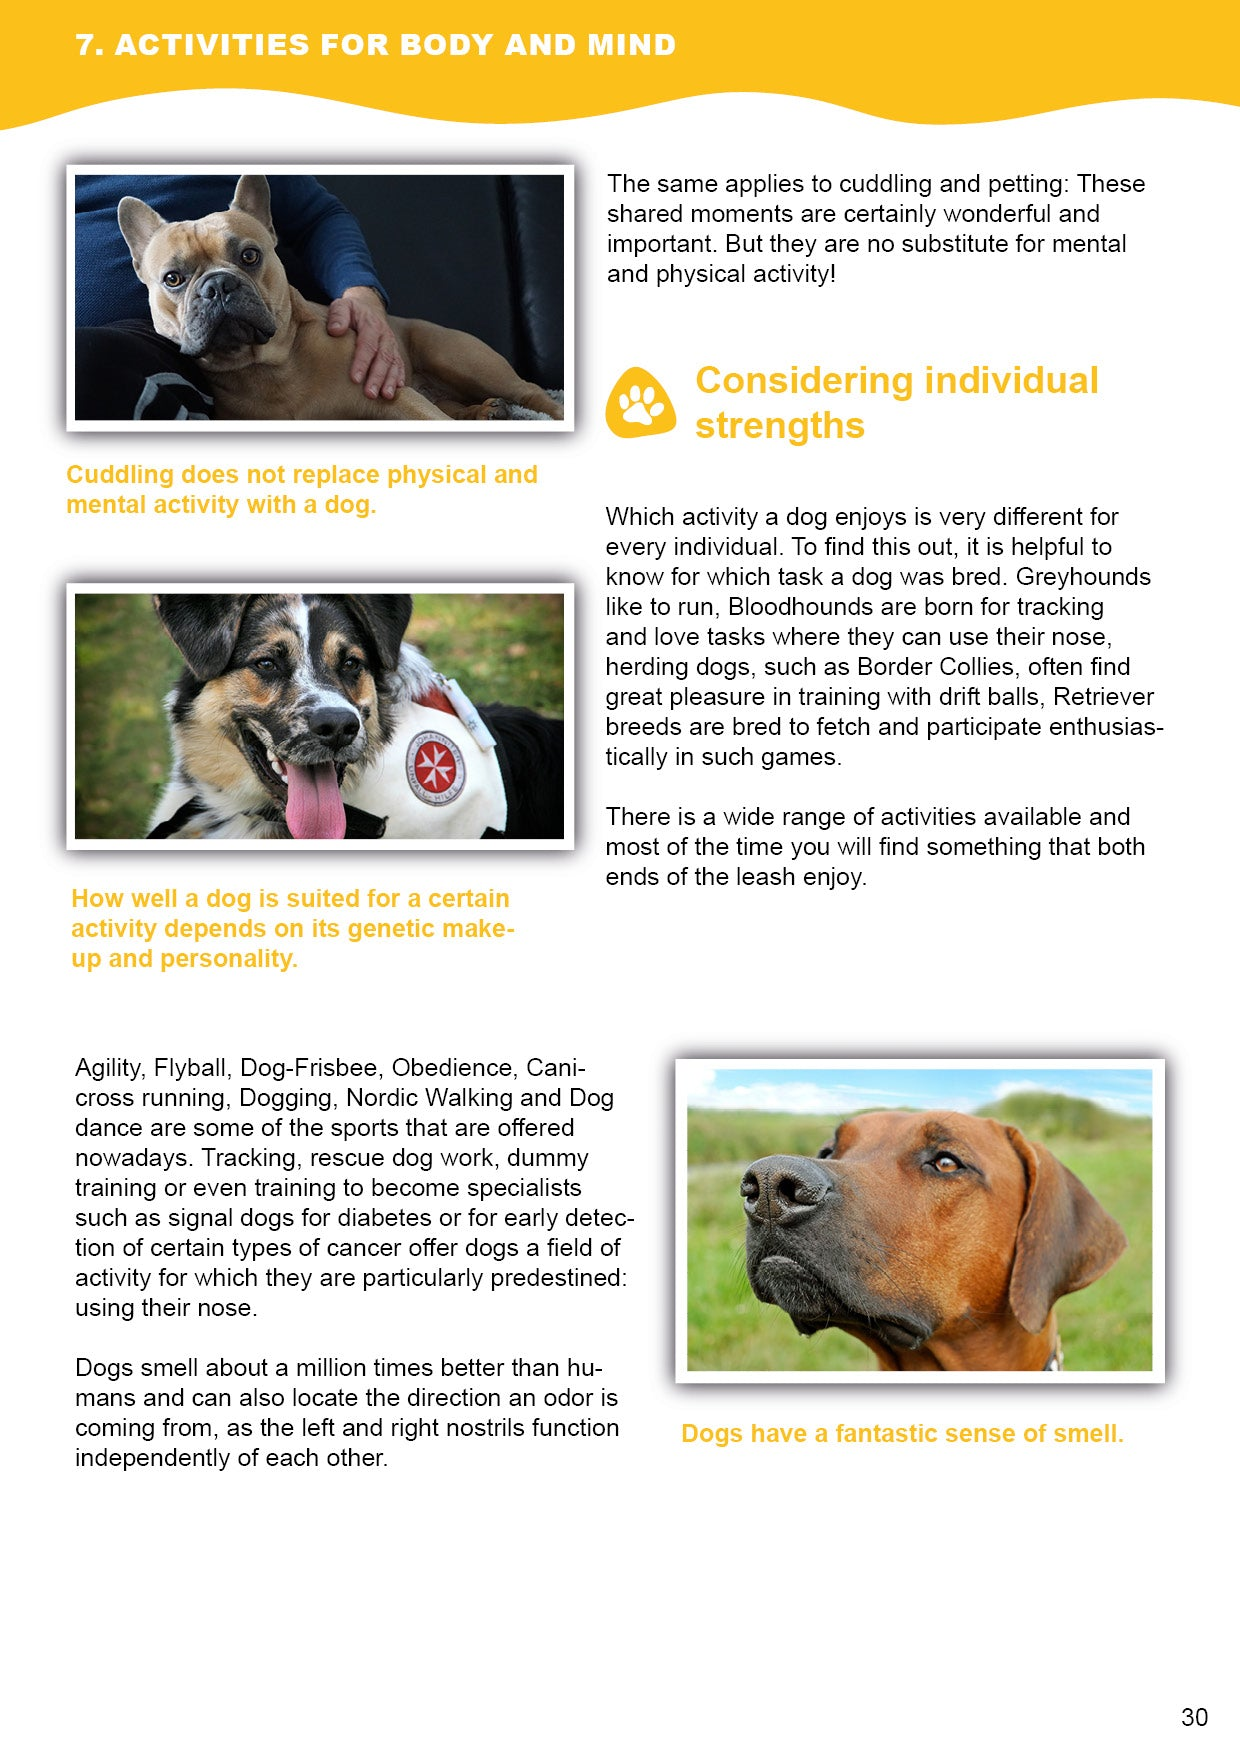 Doggy Guide Sample 2